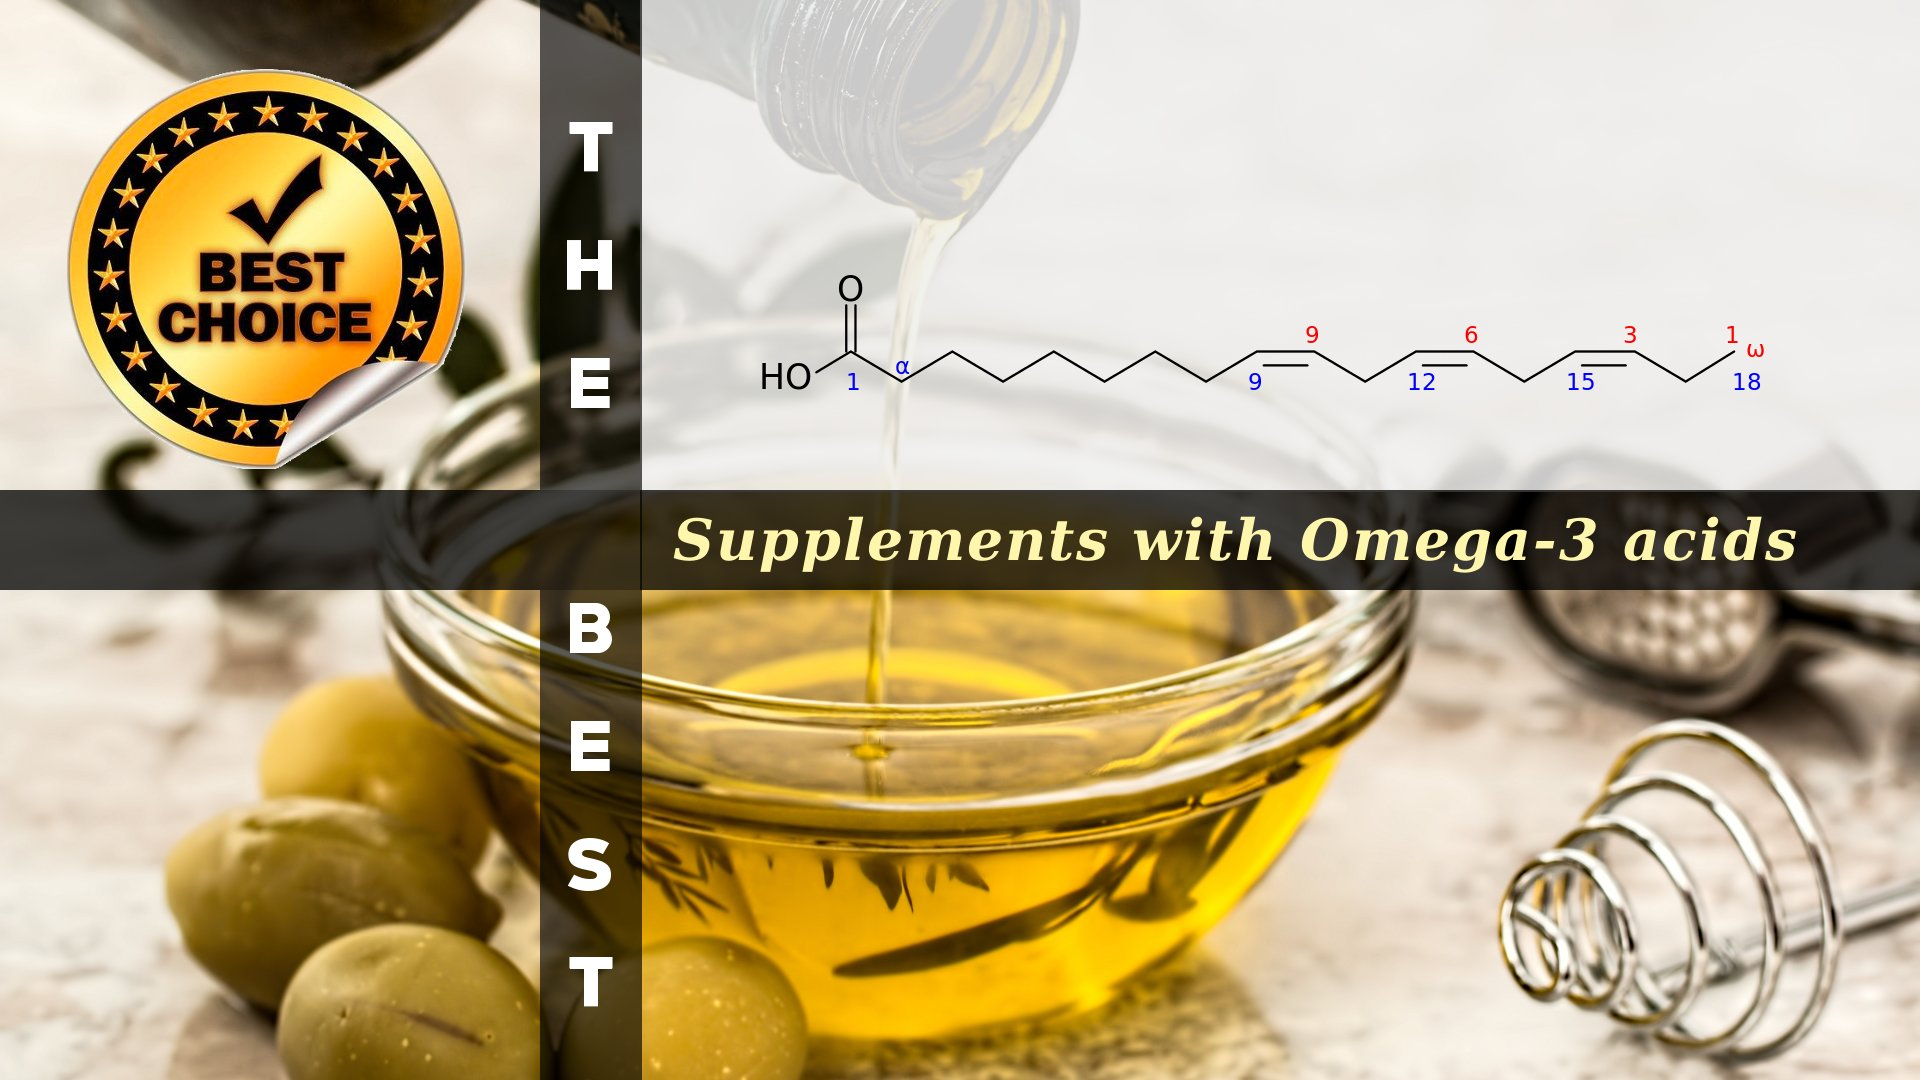 The Supplements with Omega-3 Acids